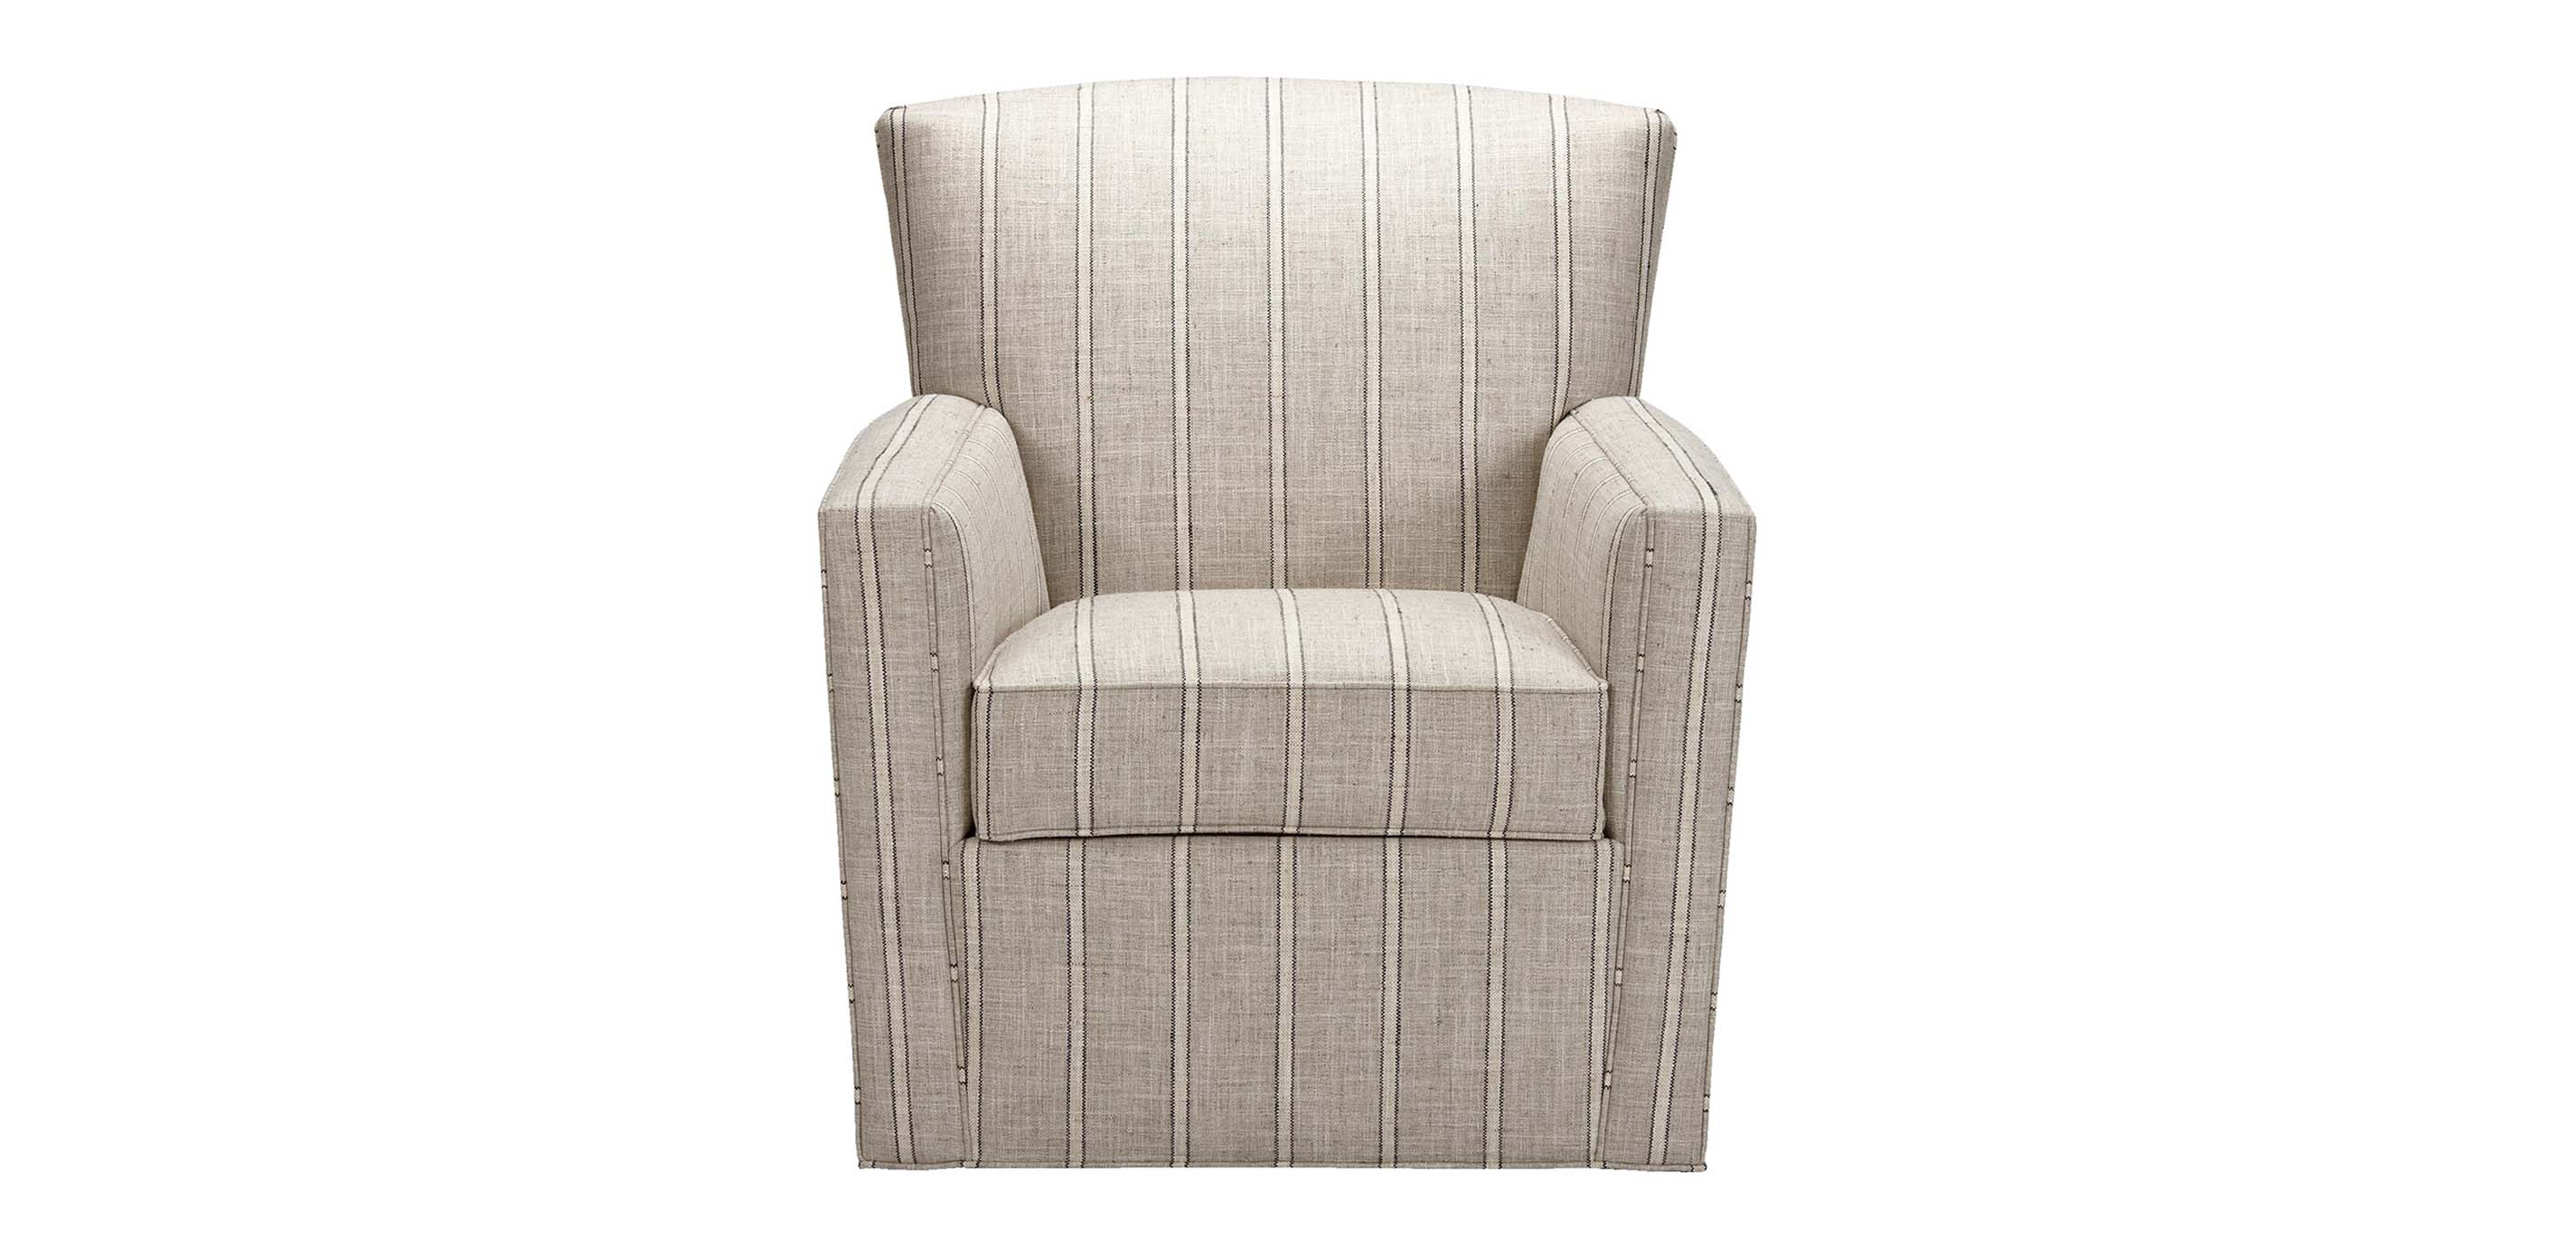 Turner Swivel Chair Chairs Chaises Ethan Allen